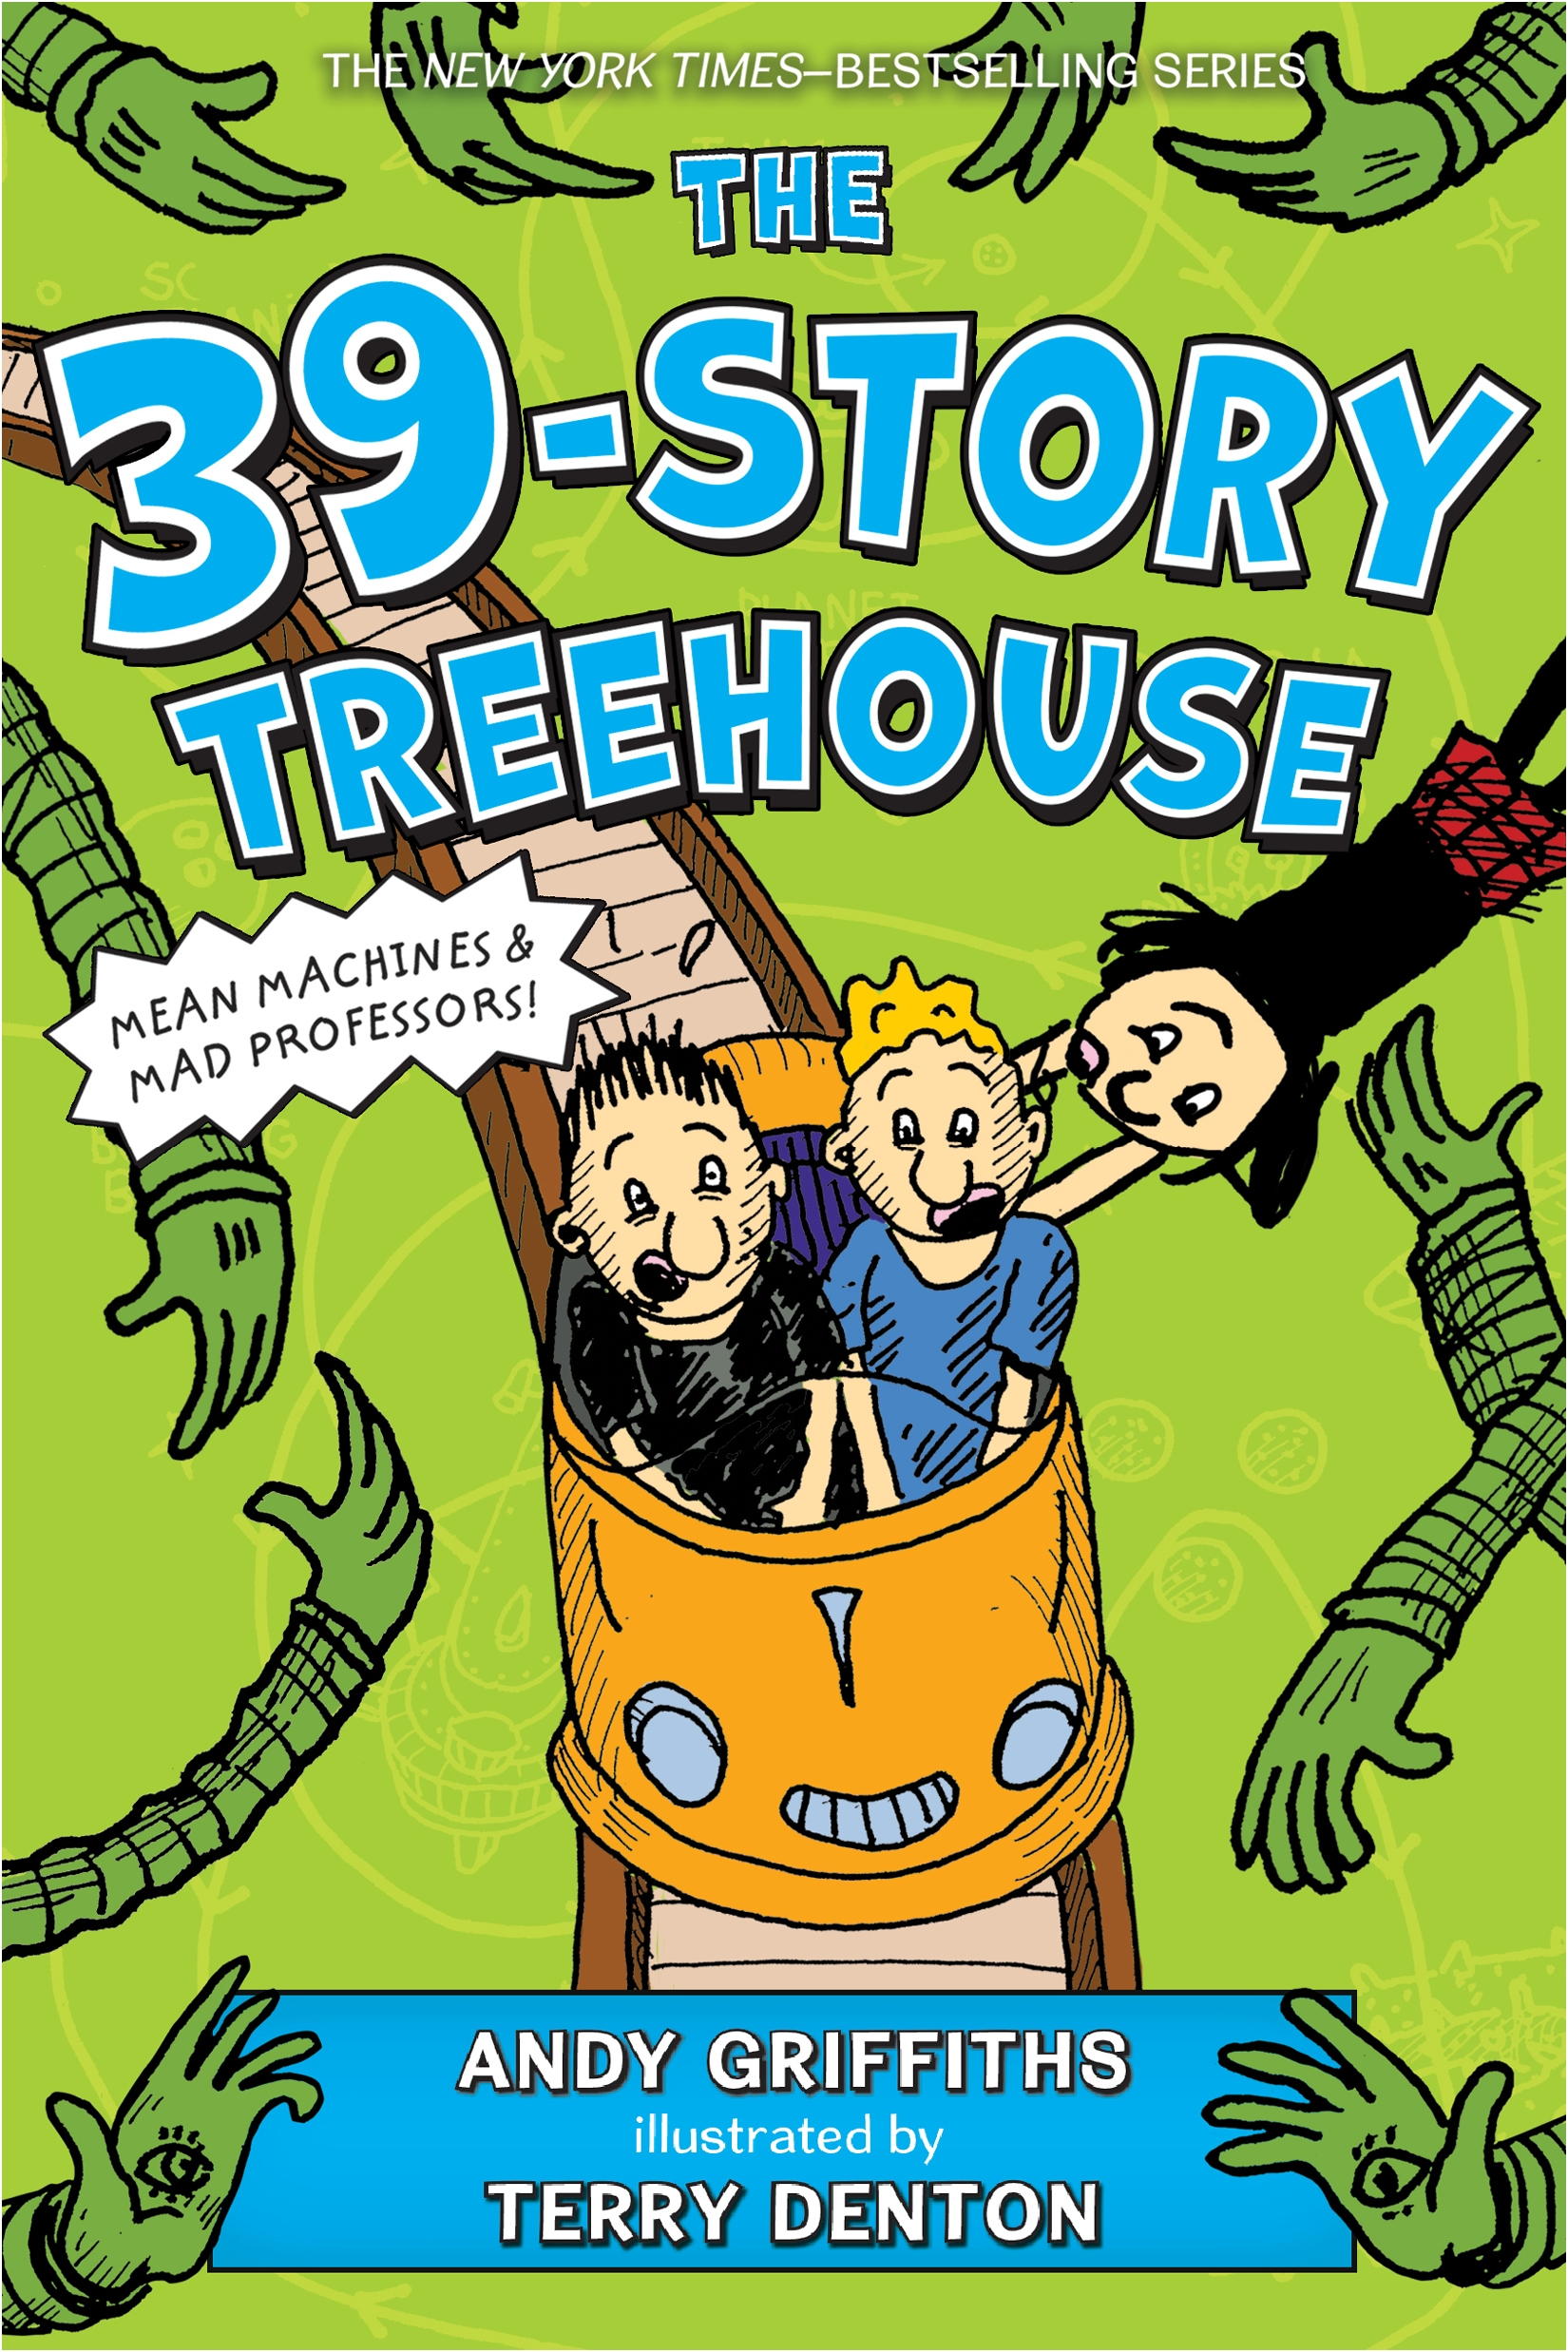 The 39-Story Treehouse Mean Machines & Mad Professors!